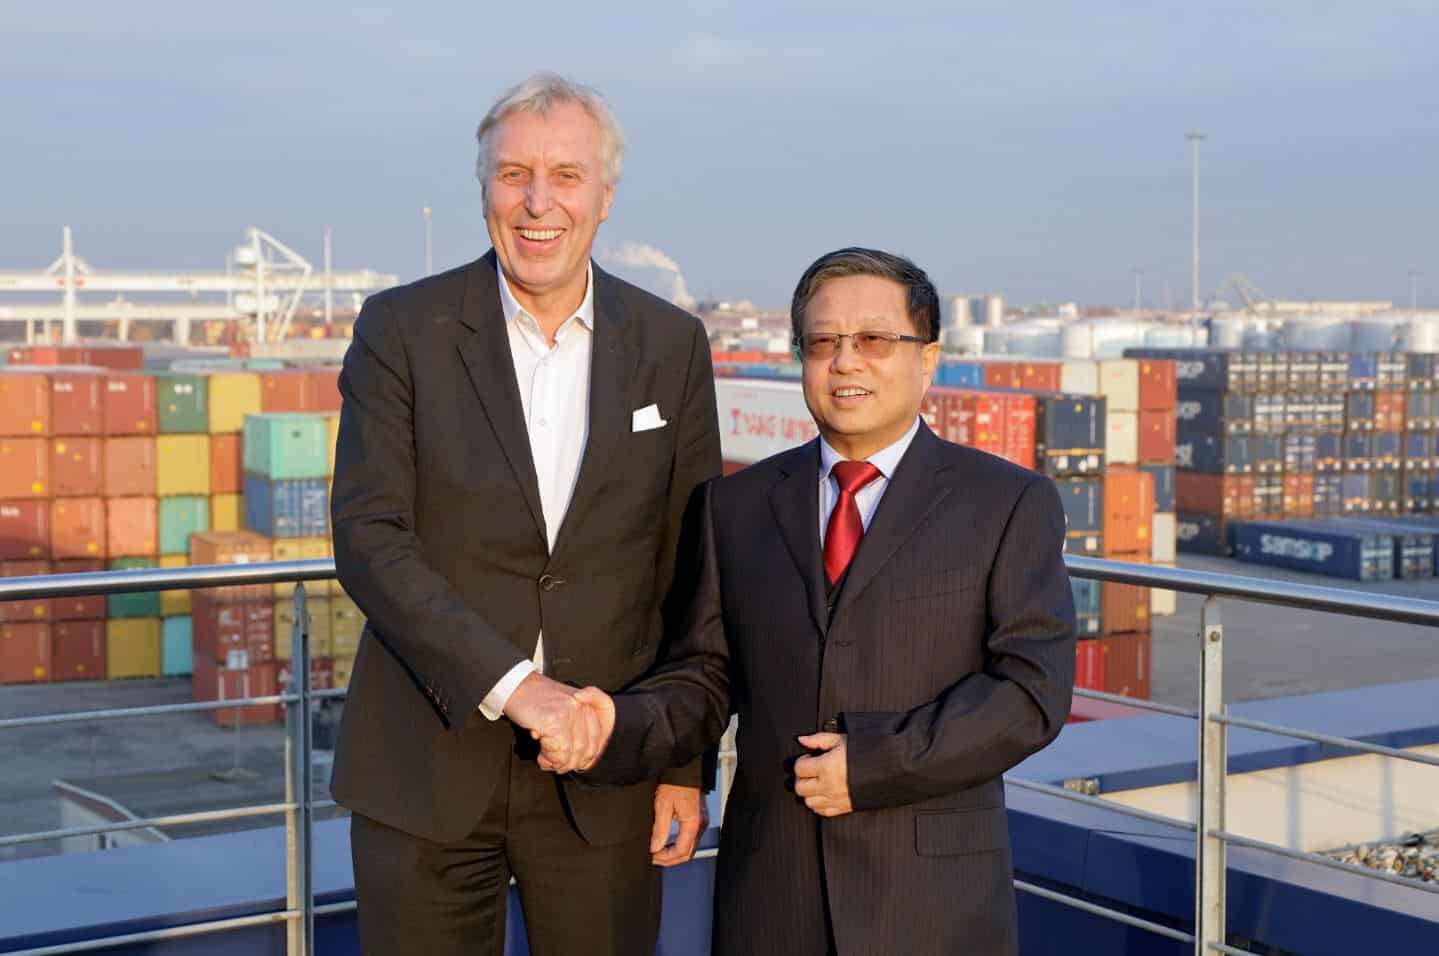 Port of Duisburg expands activities with China